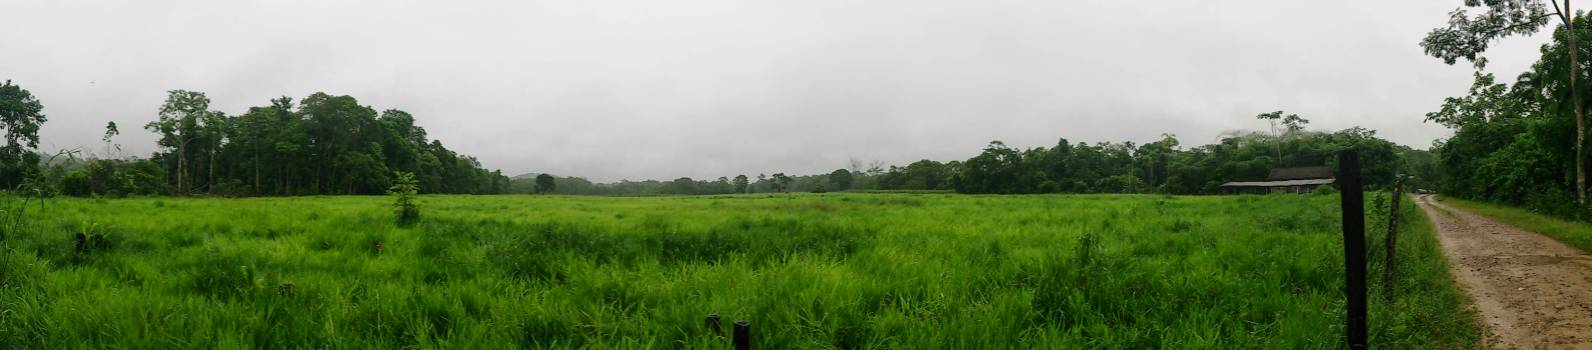 Panoramic View of Agricultural Field Against Sky #65915